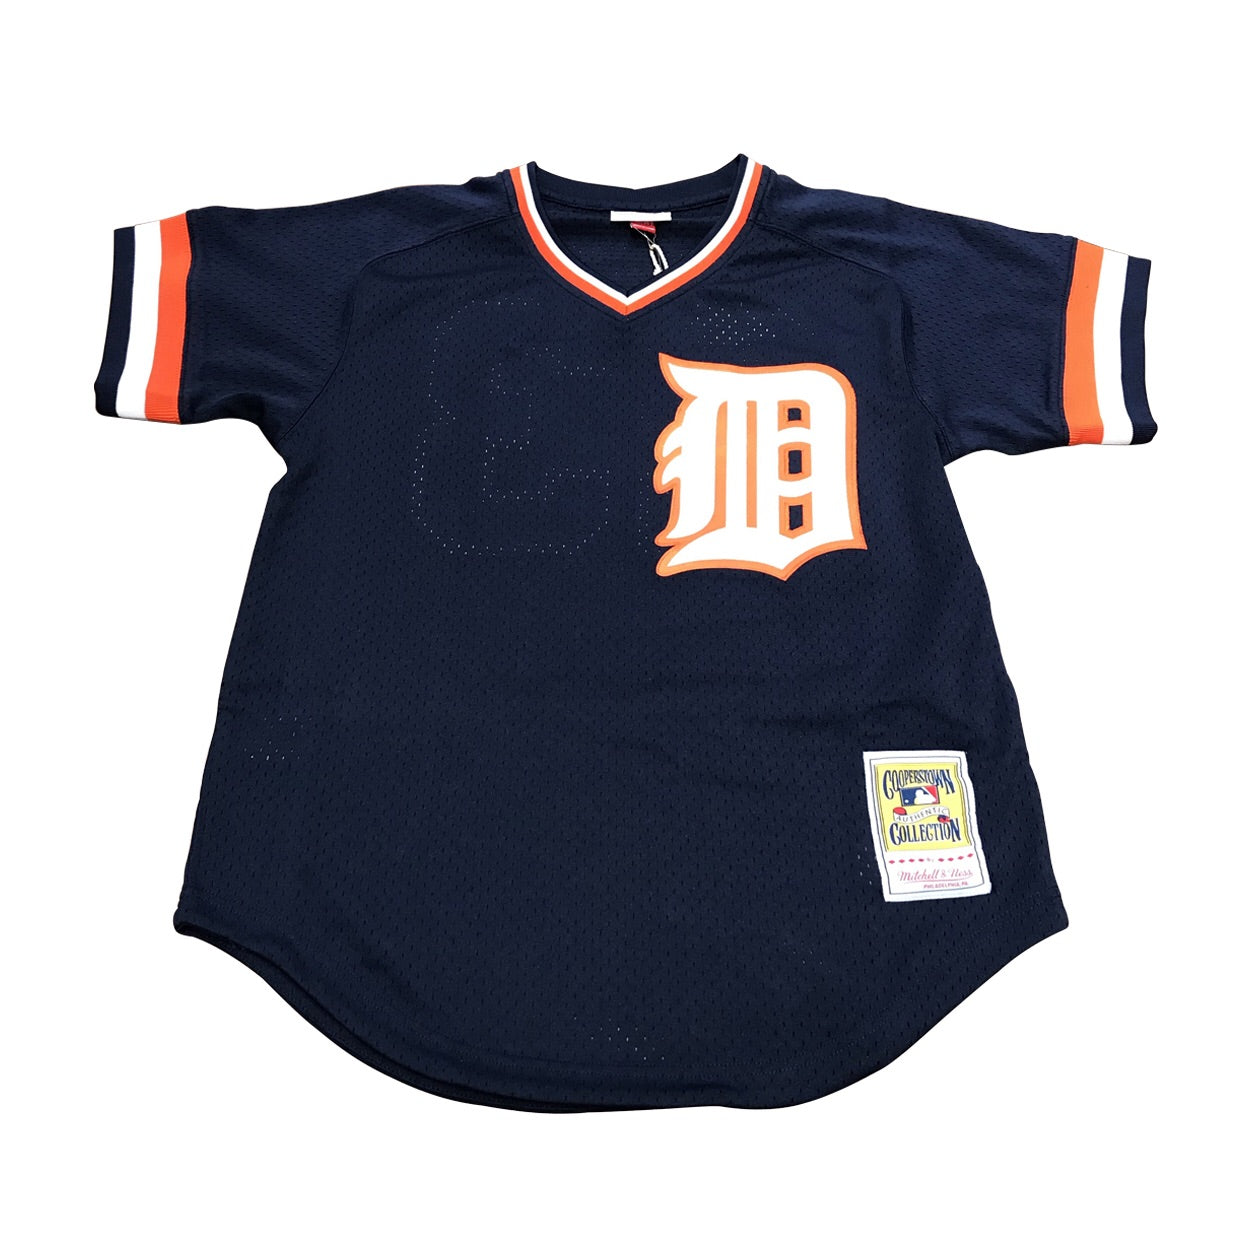 MITCHELL AND NESS JERSEY 5621AGIBSON